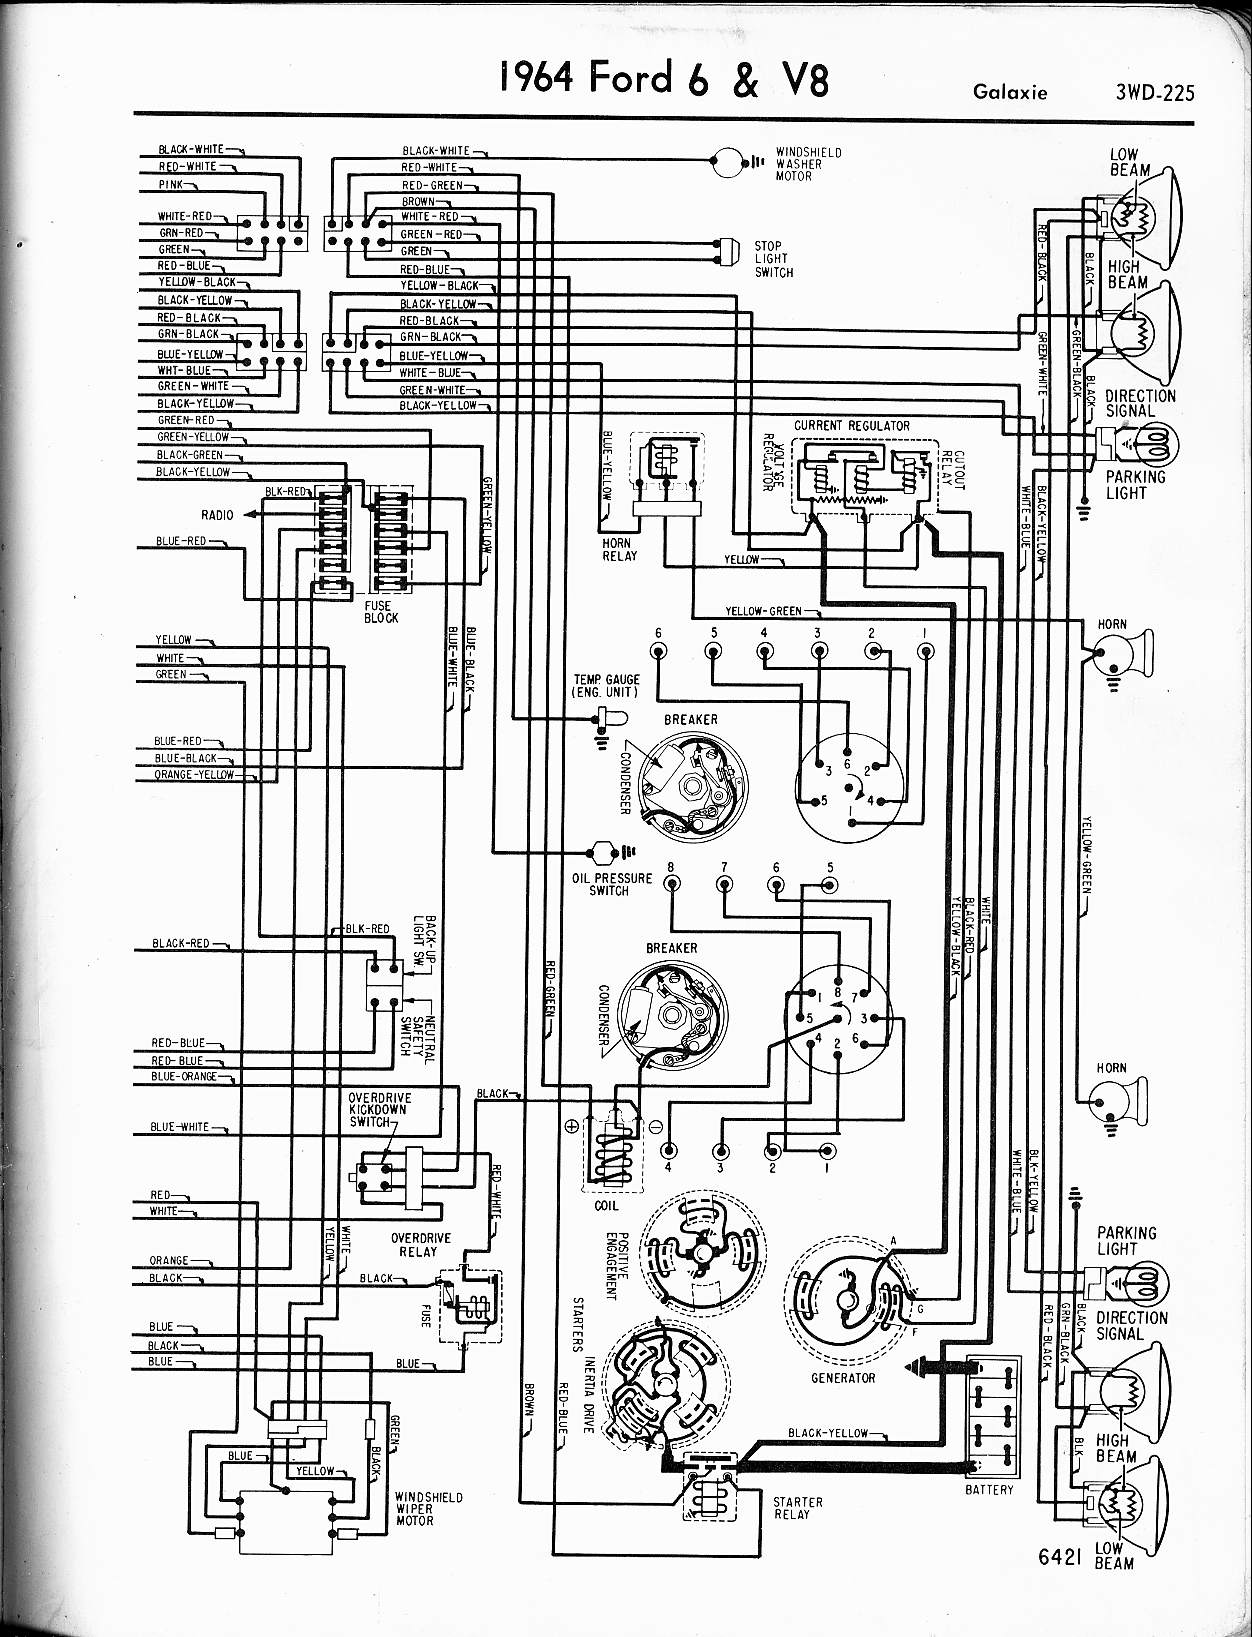 1969 Camaro Horn Relay Wiring Diagram in addition Diagram Moreover 1963 Ford Falcon Wiring On likewise 1963 Ford Tractor Wiring Diagram as well 1972 Chevy Truck Wiper Motor Wiring Diagram further Wiring Diagram Ford Mustang 1966. on 1967 ford galaxie wiring harness